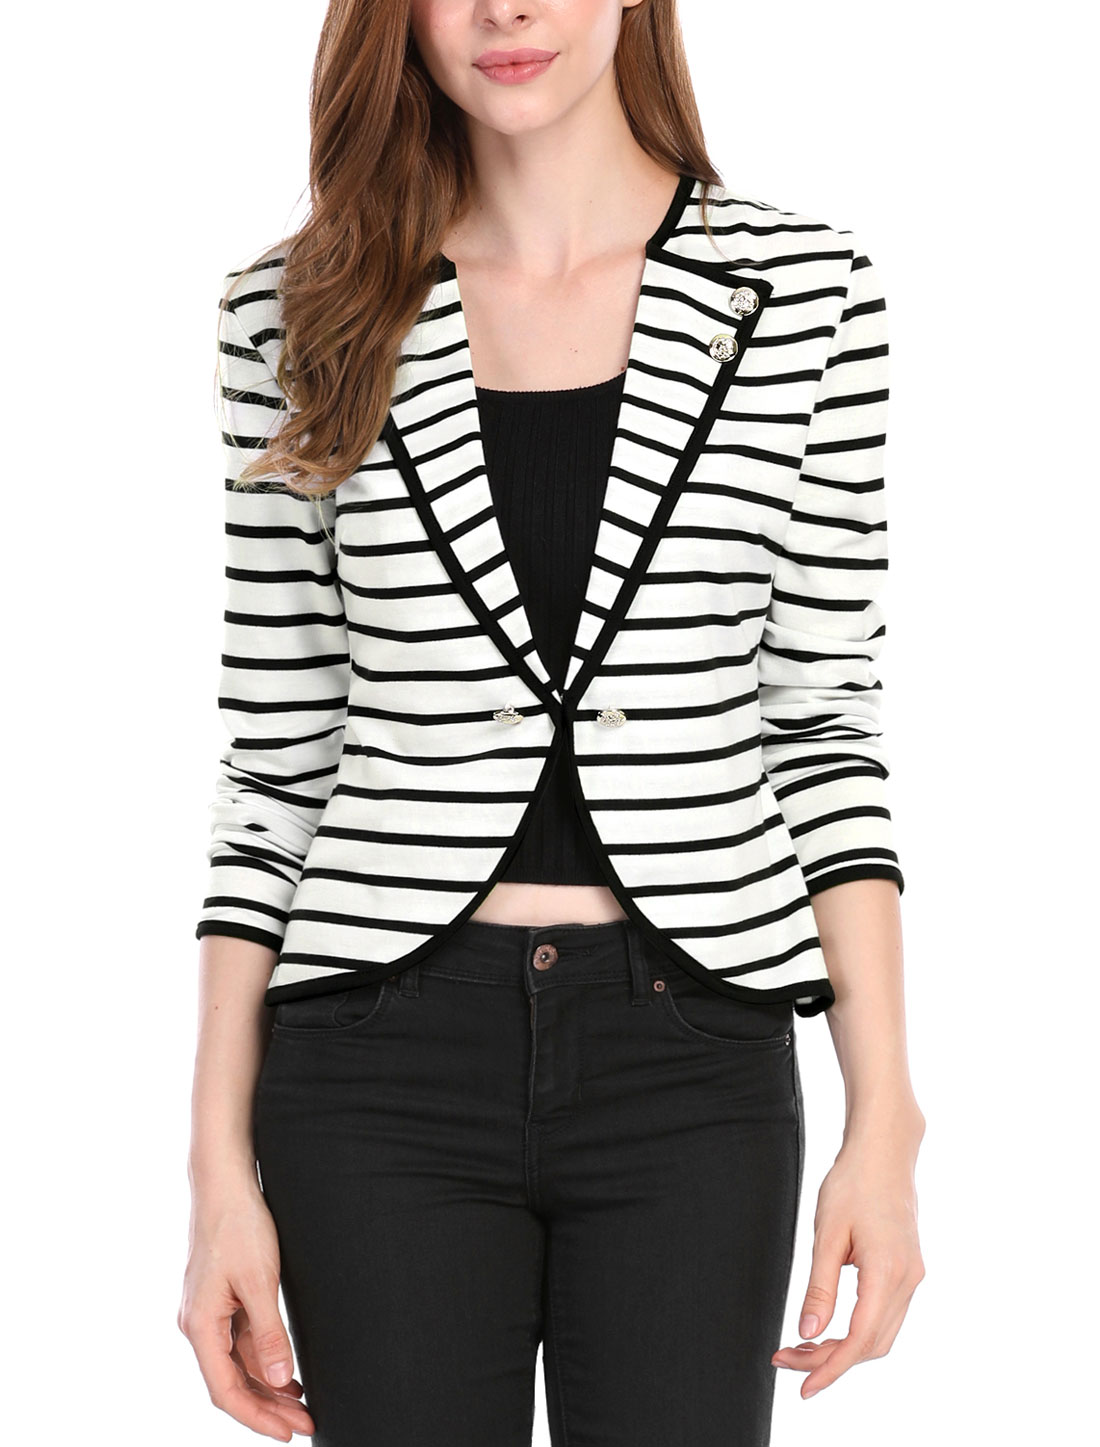 Women Chic Black White Striped Design Long Sleeve Casual Blazer L